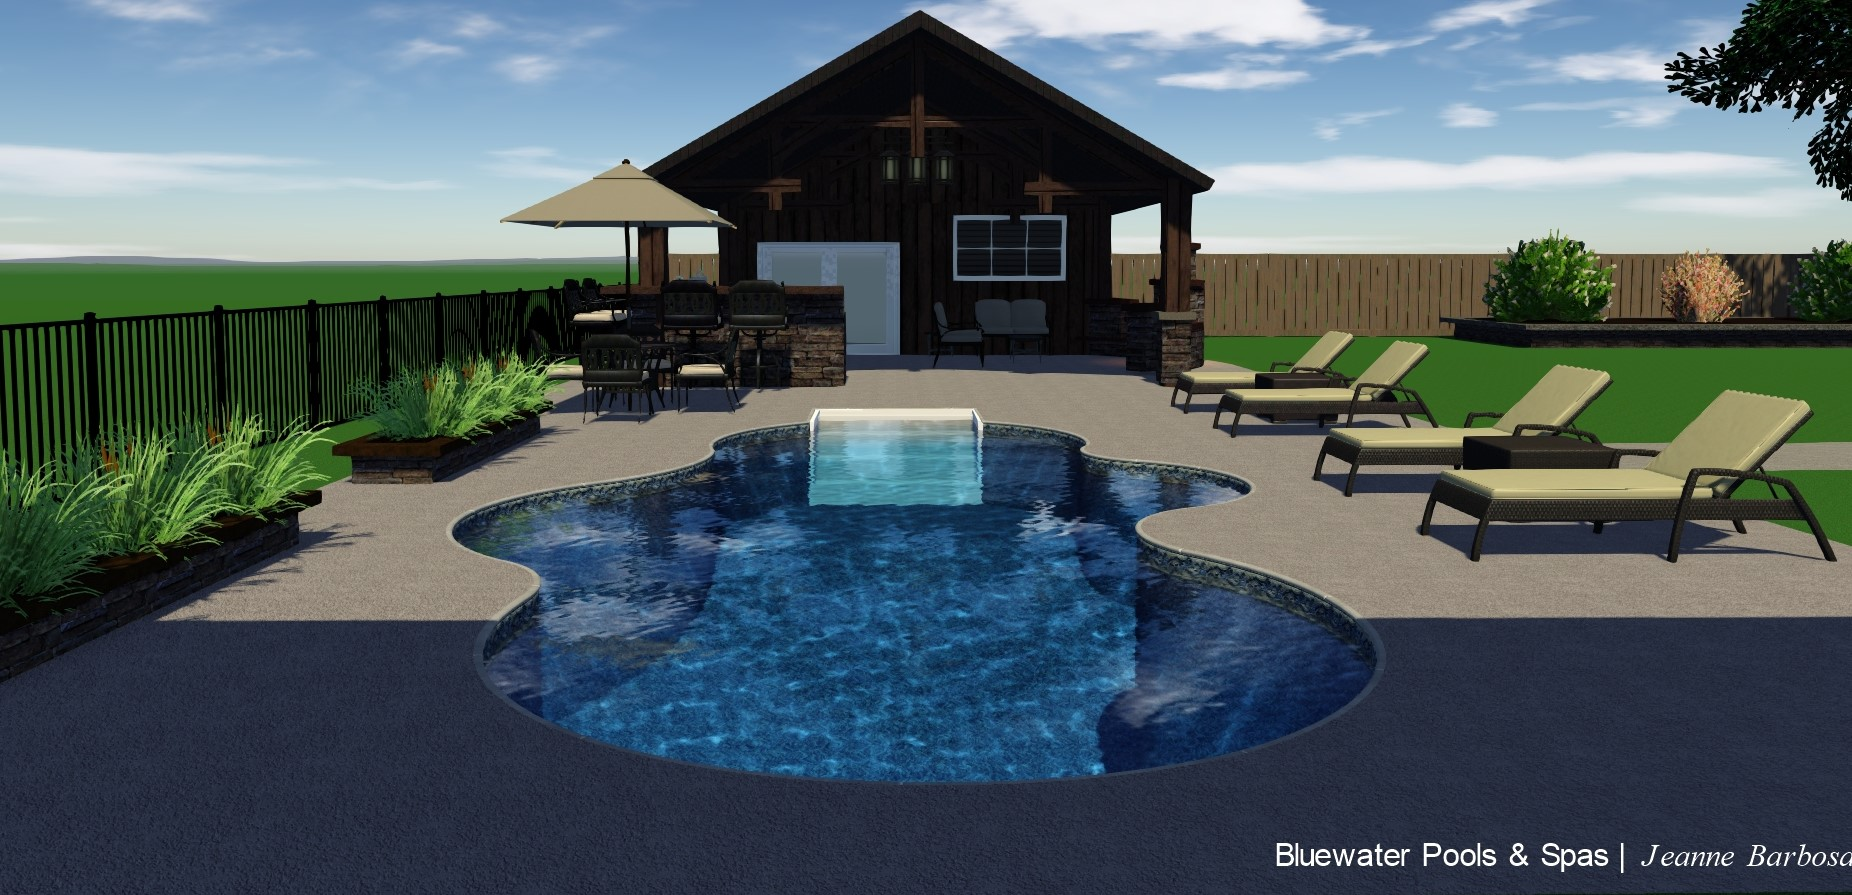 Bluewater Pools & Spas Inground Pool Design